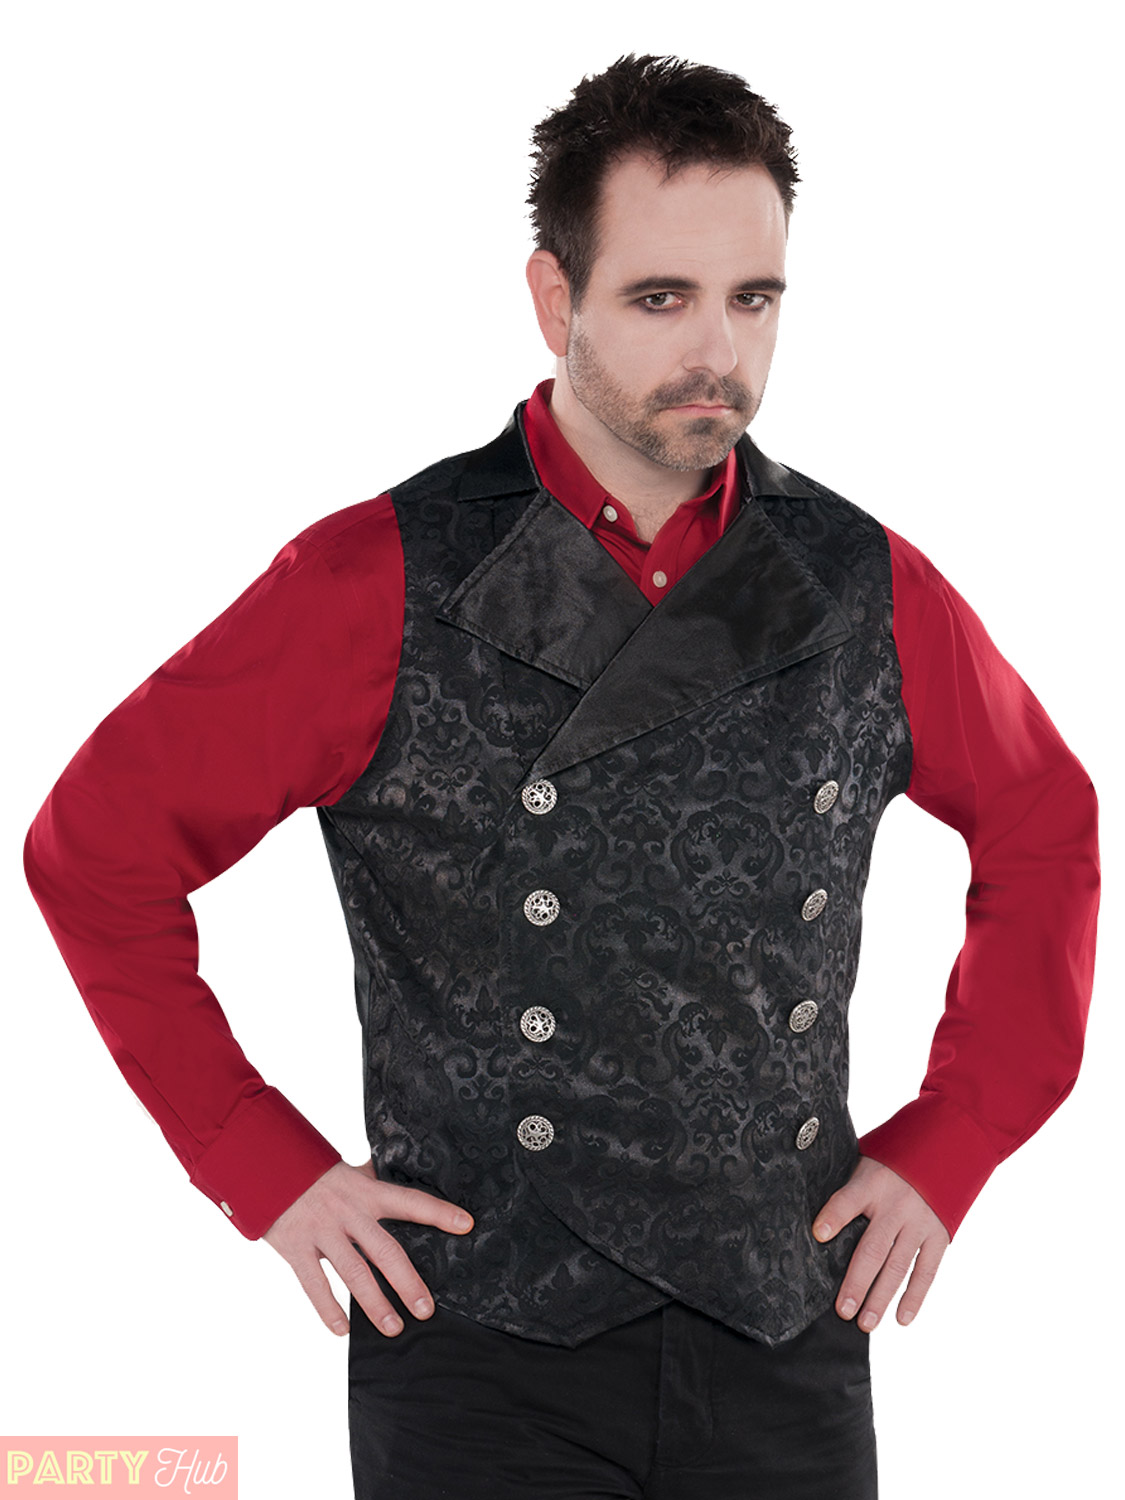 Mens-Gothic-Vampire-Vest-Adults-Halloween-Fancy-Dress-Costume-Accessories